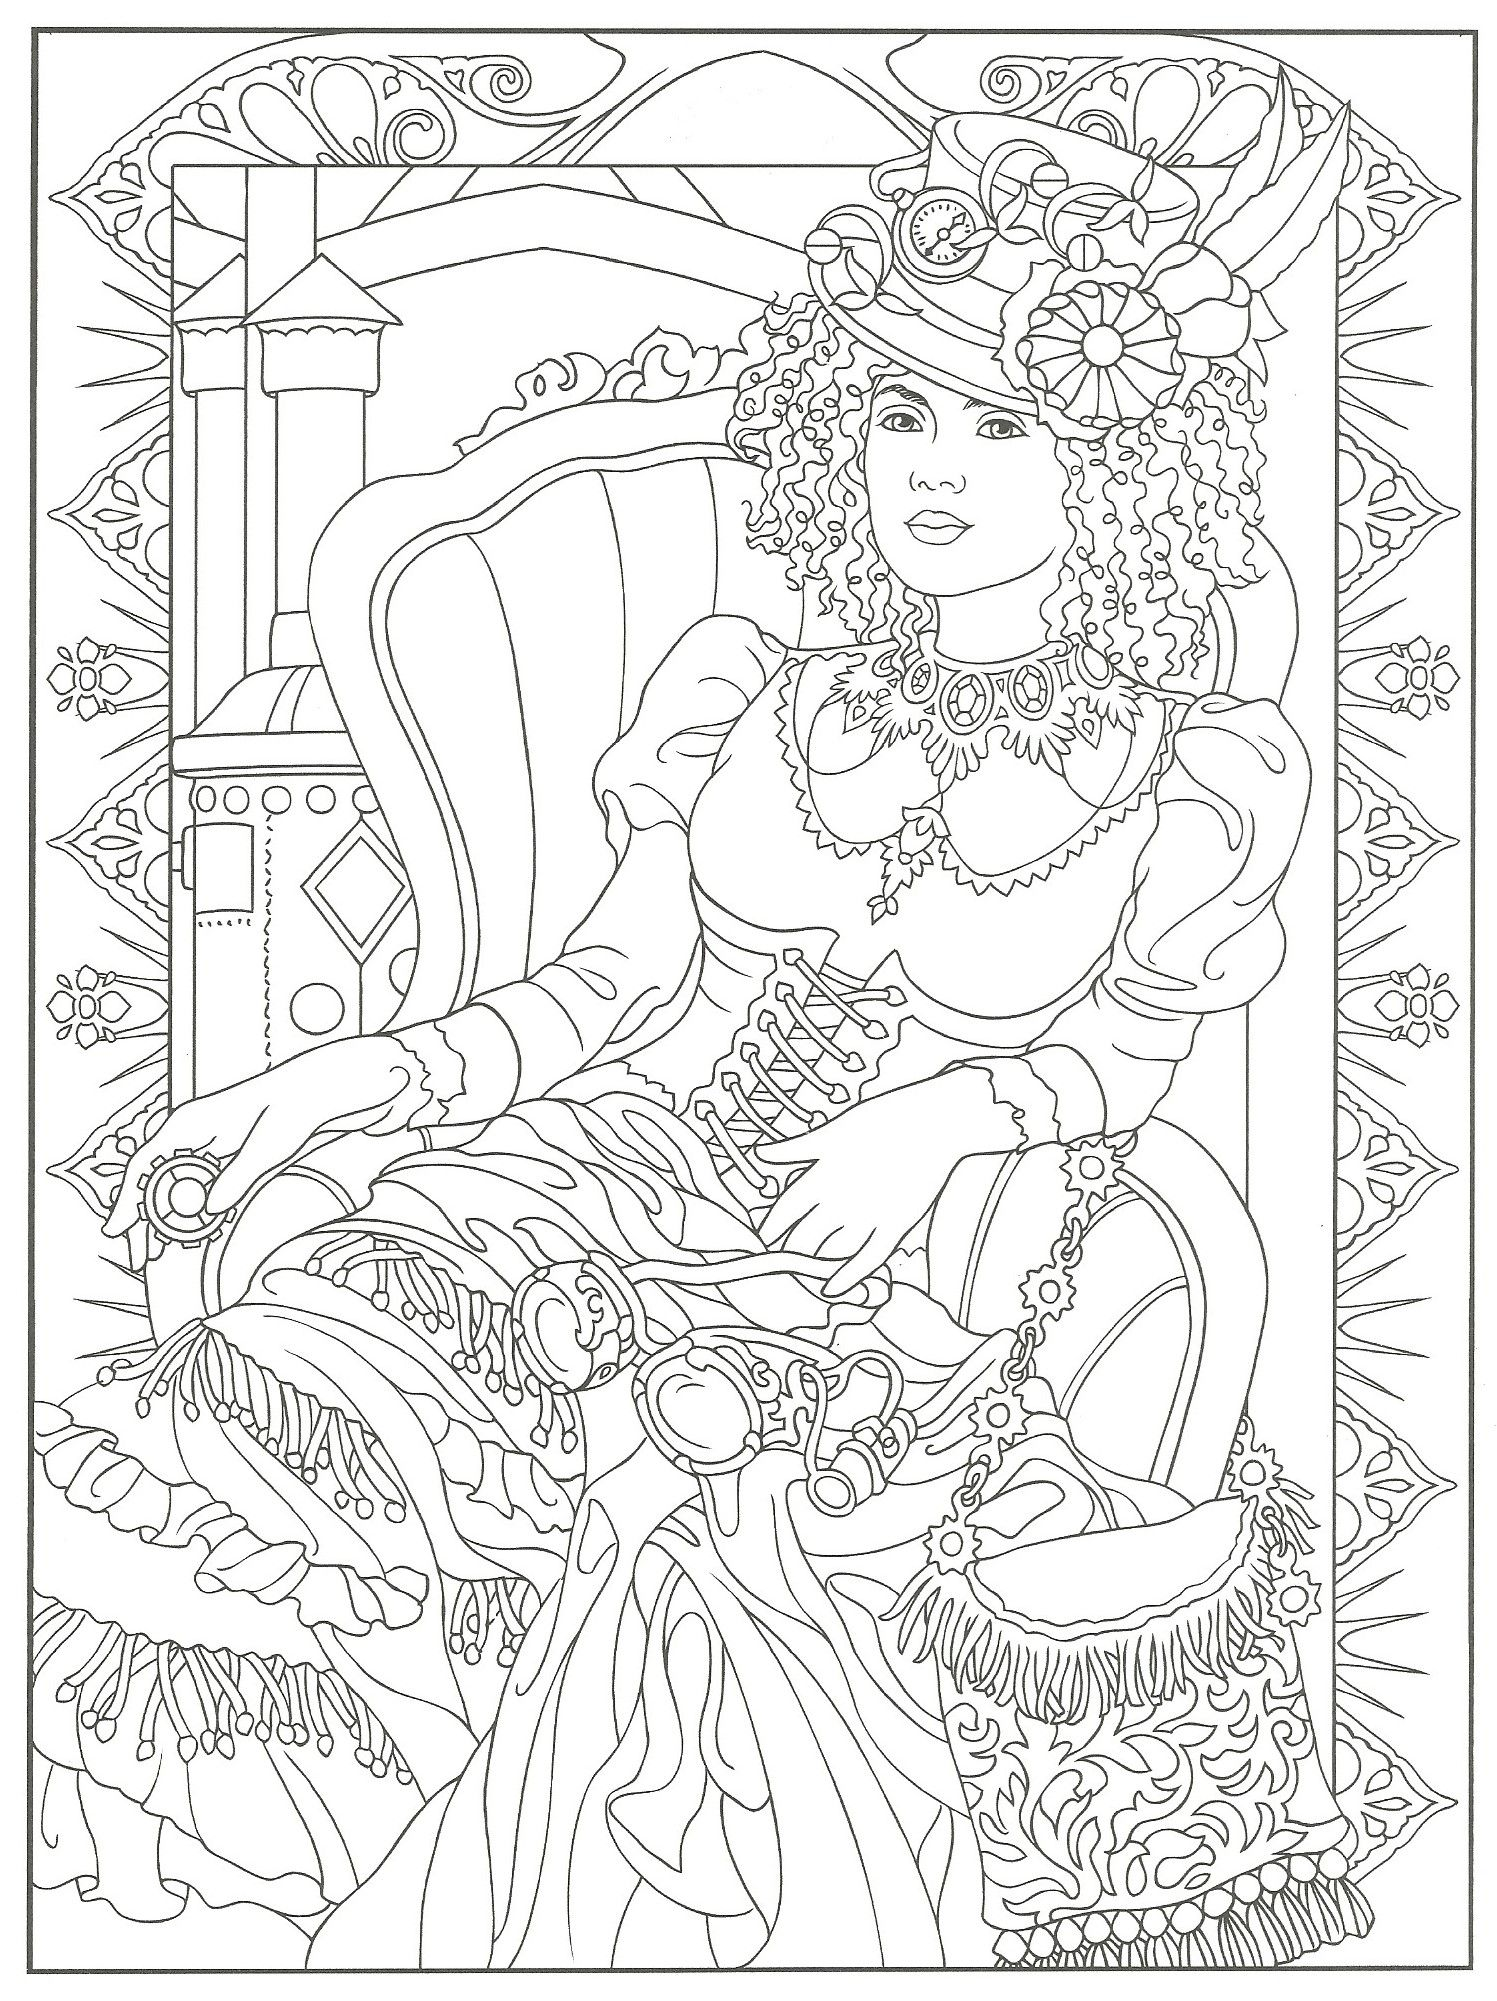 Steampunk Adult Coloring Artwork By Marty Noble Creative Haven Fashions Book Dover Publications